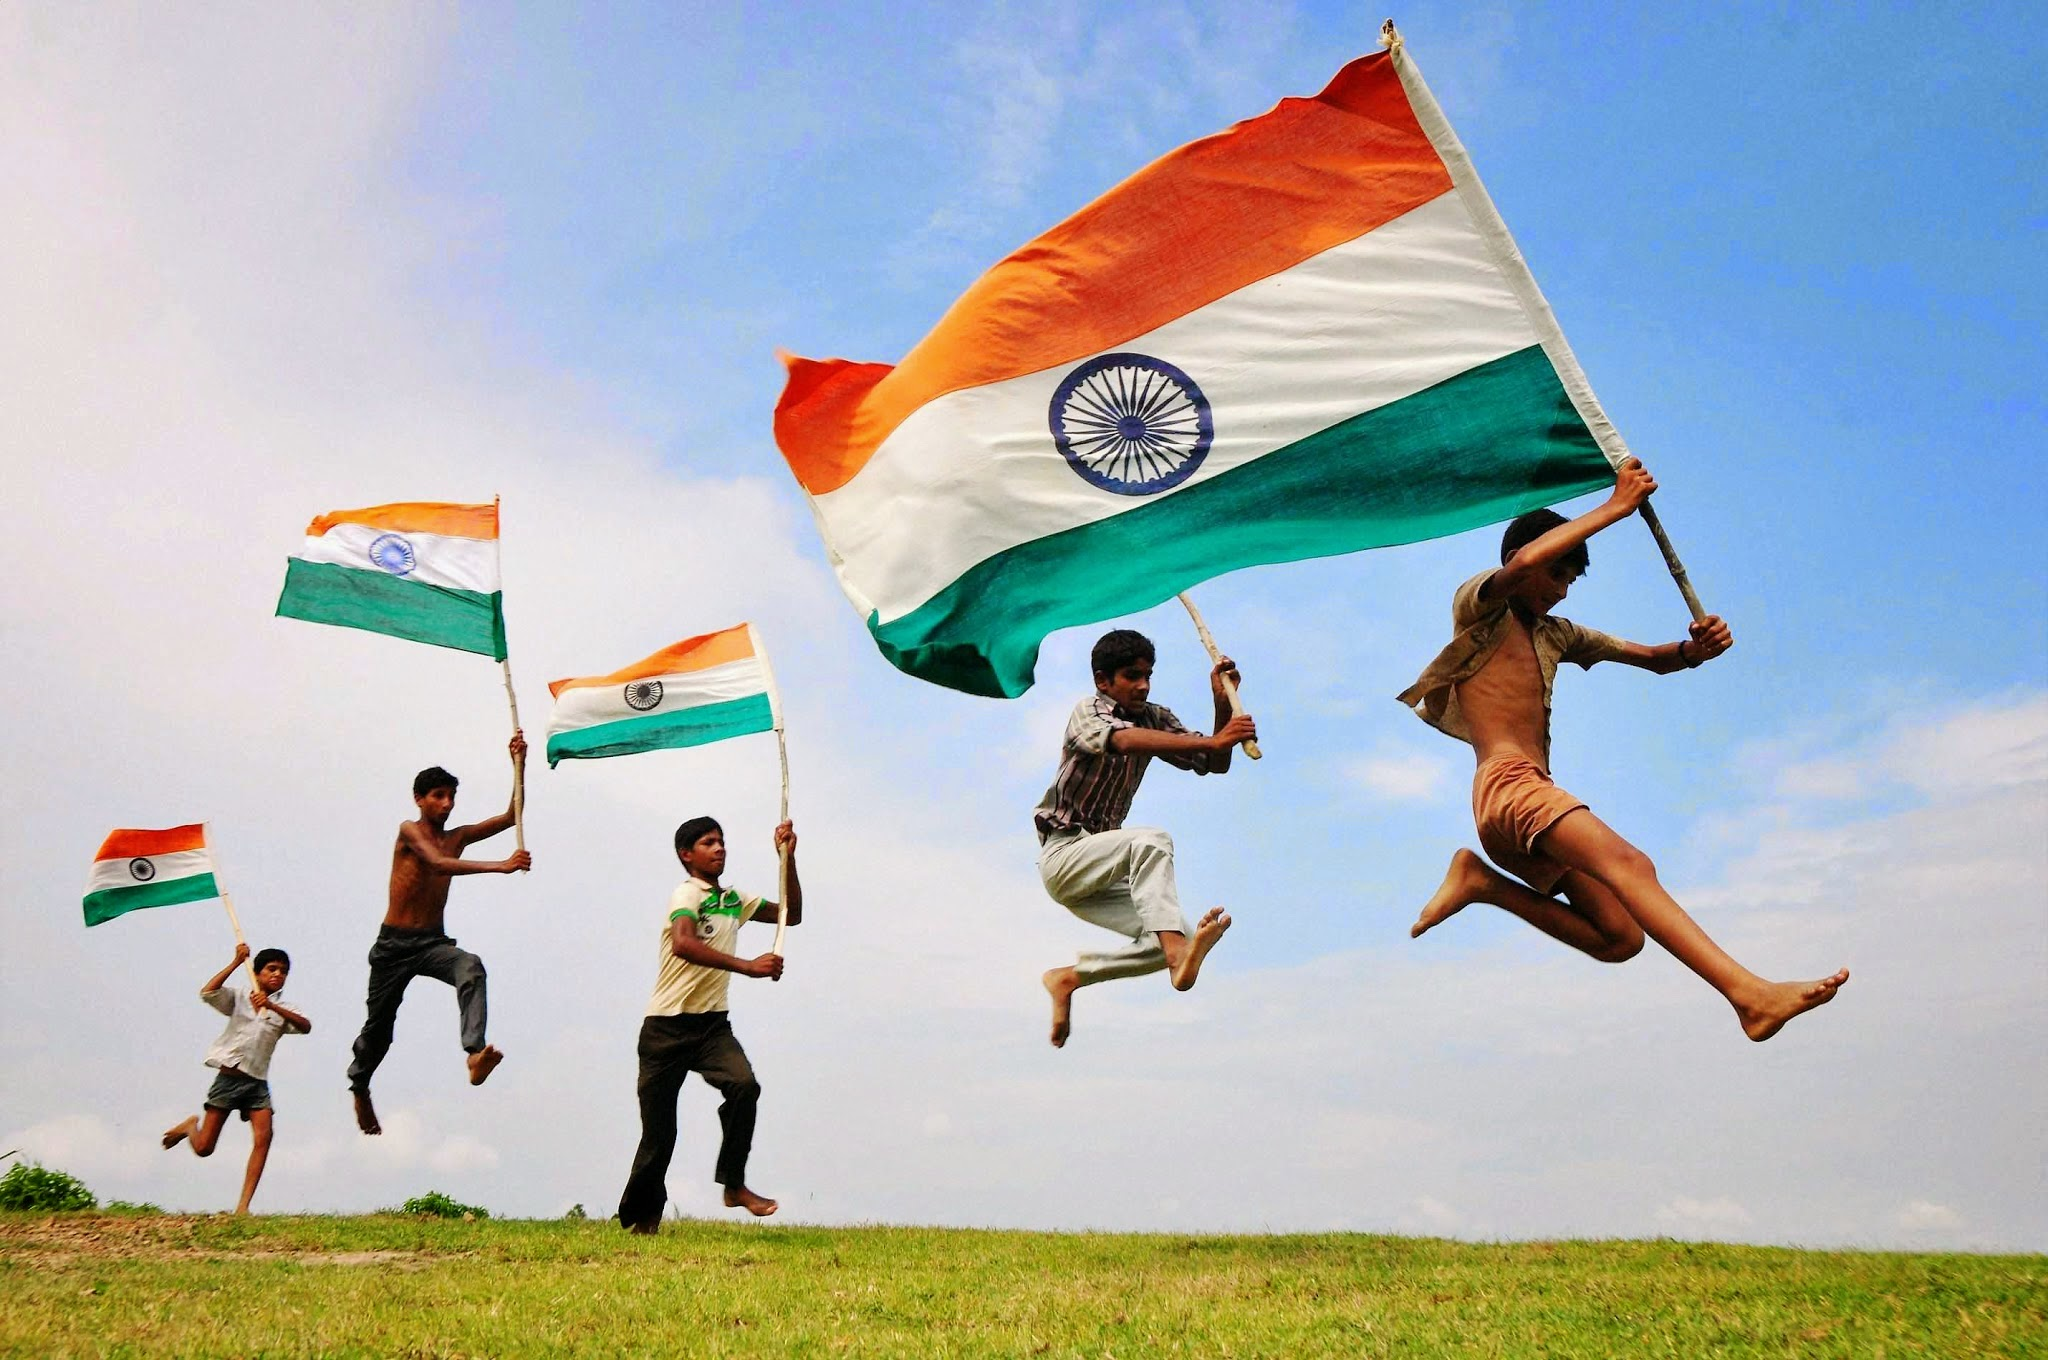 via0.com - Indian Flag Images, Pictures, Wallpapers in HD and GIF